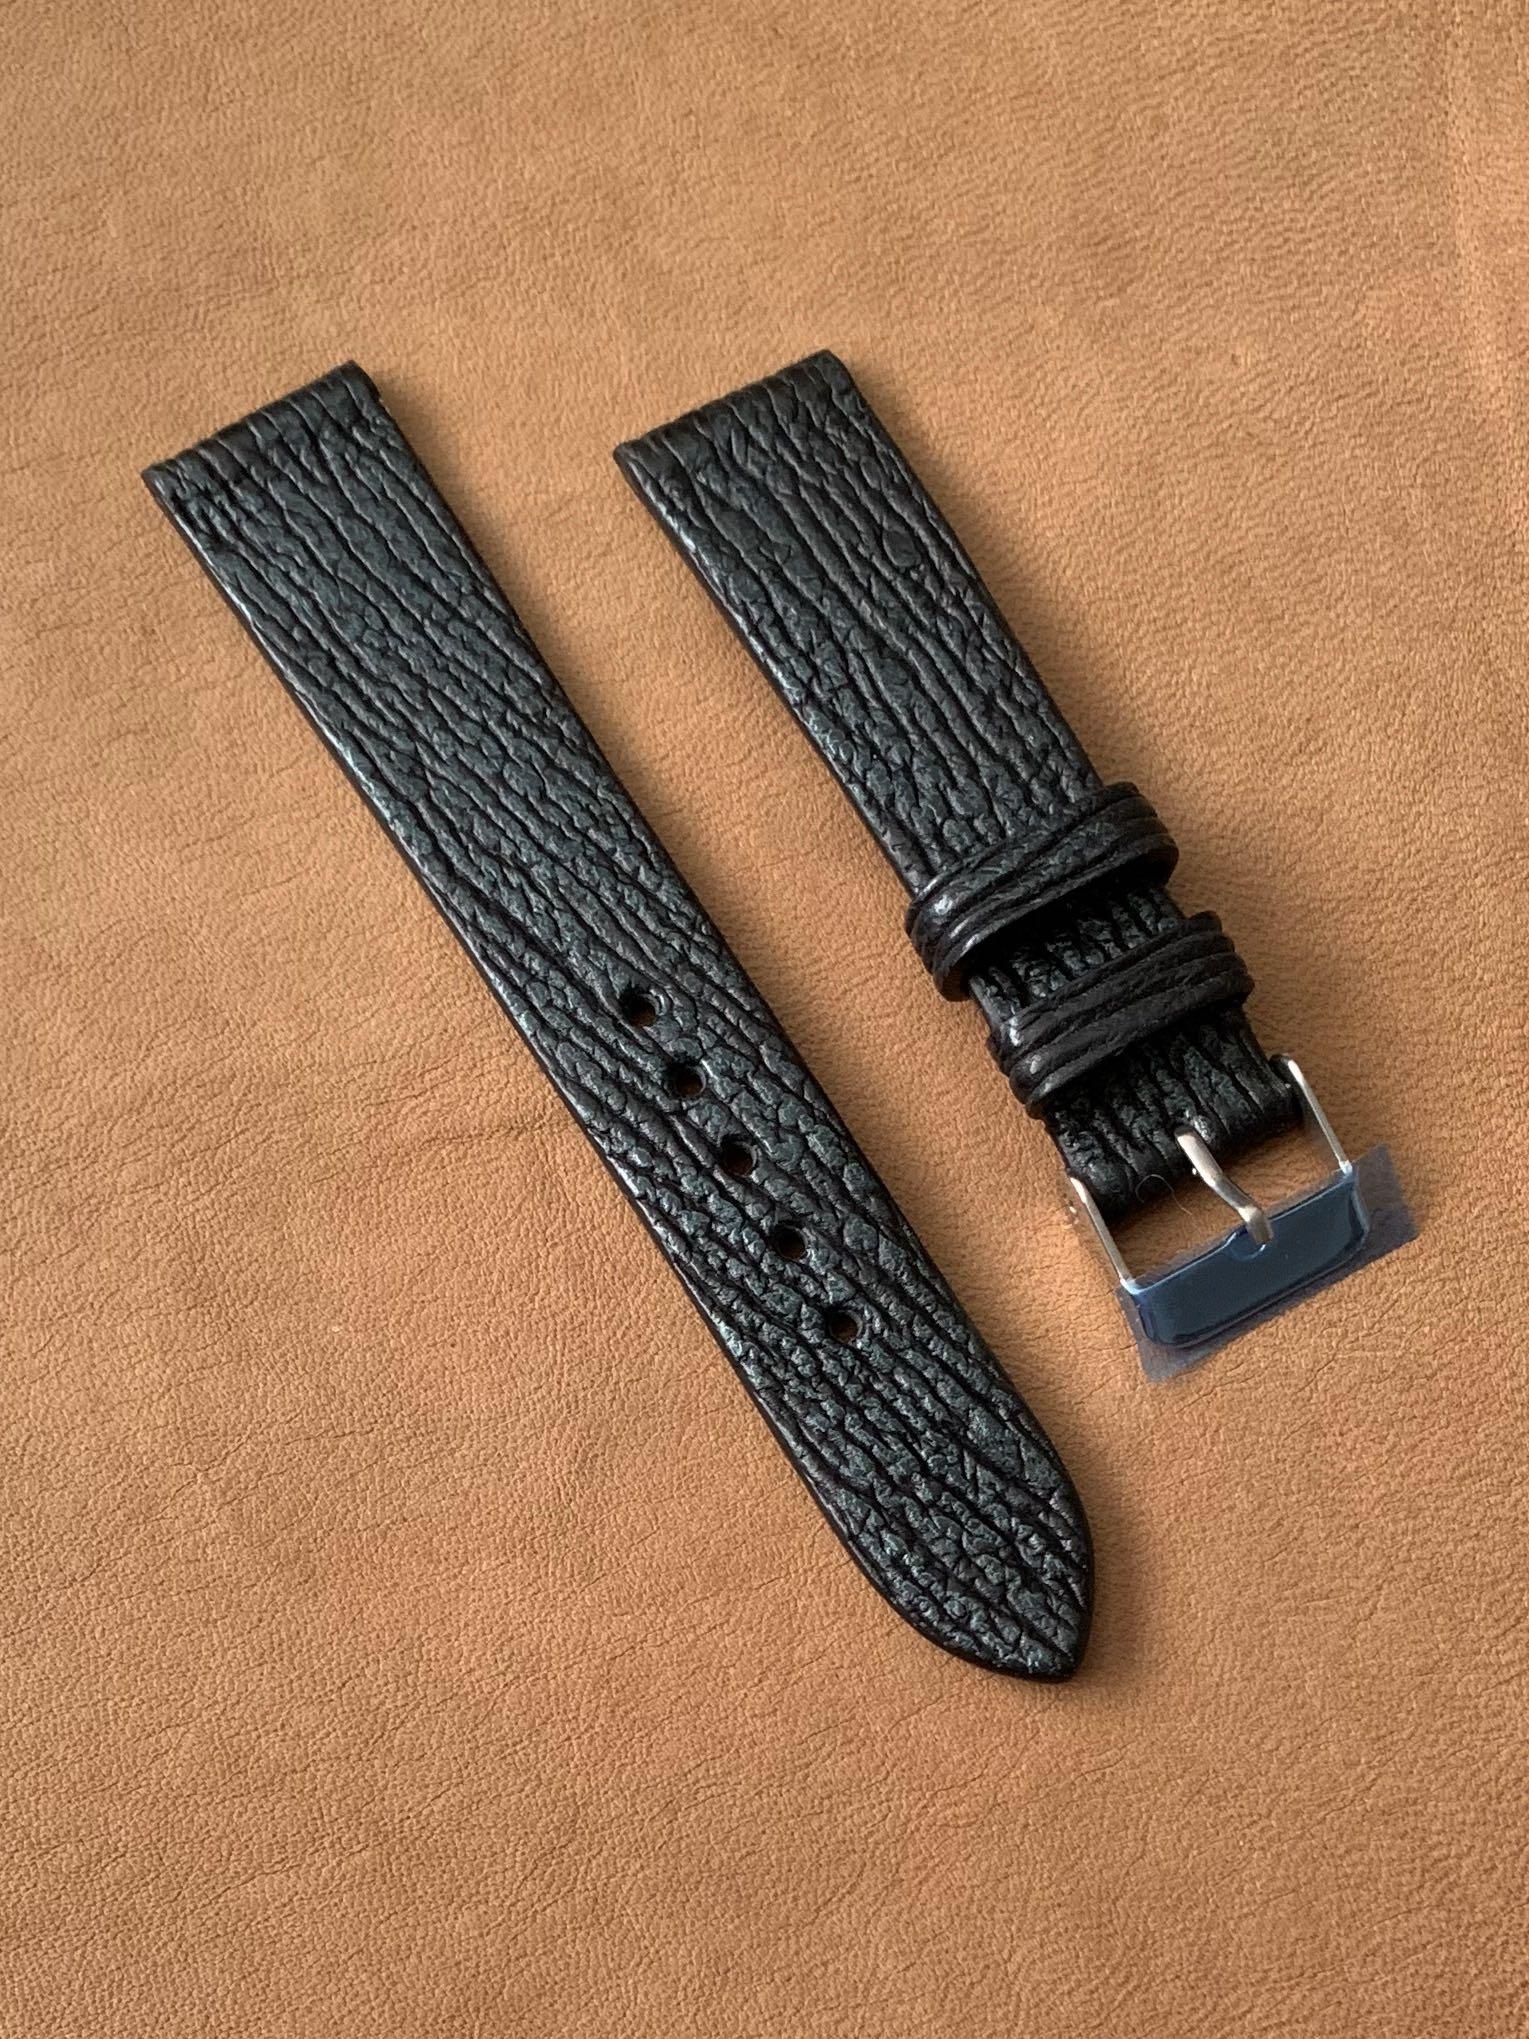 20mm/18mm Black with Forest Green Shark Leather Watch Strap 20mm@lug/18mm@buckle Standard length- L:120mm, S:75mm (two pieces sold already, last piece left! 🙏🏻👍🏻)